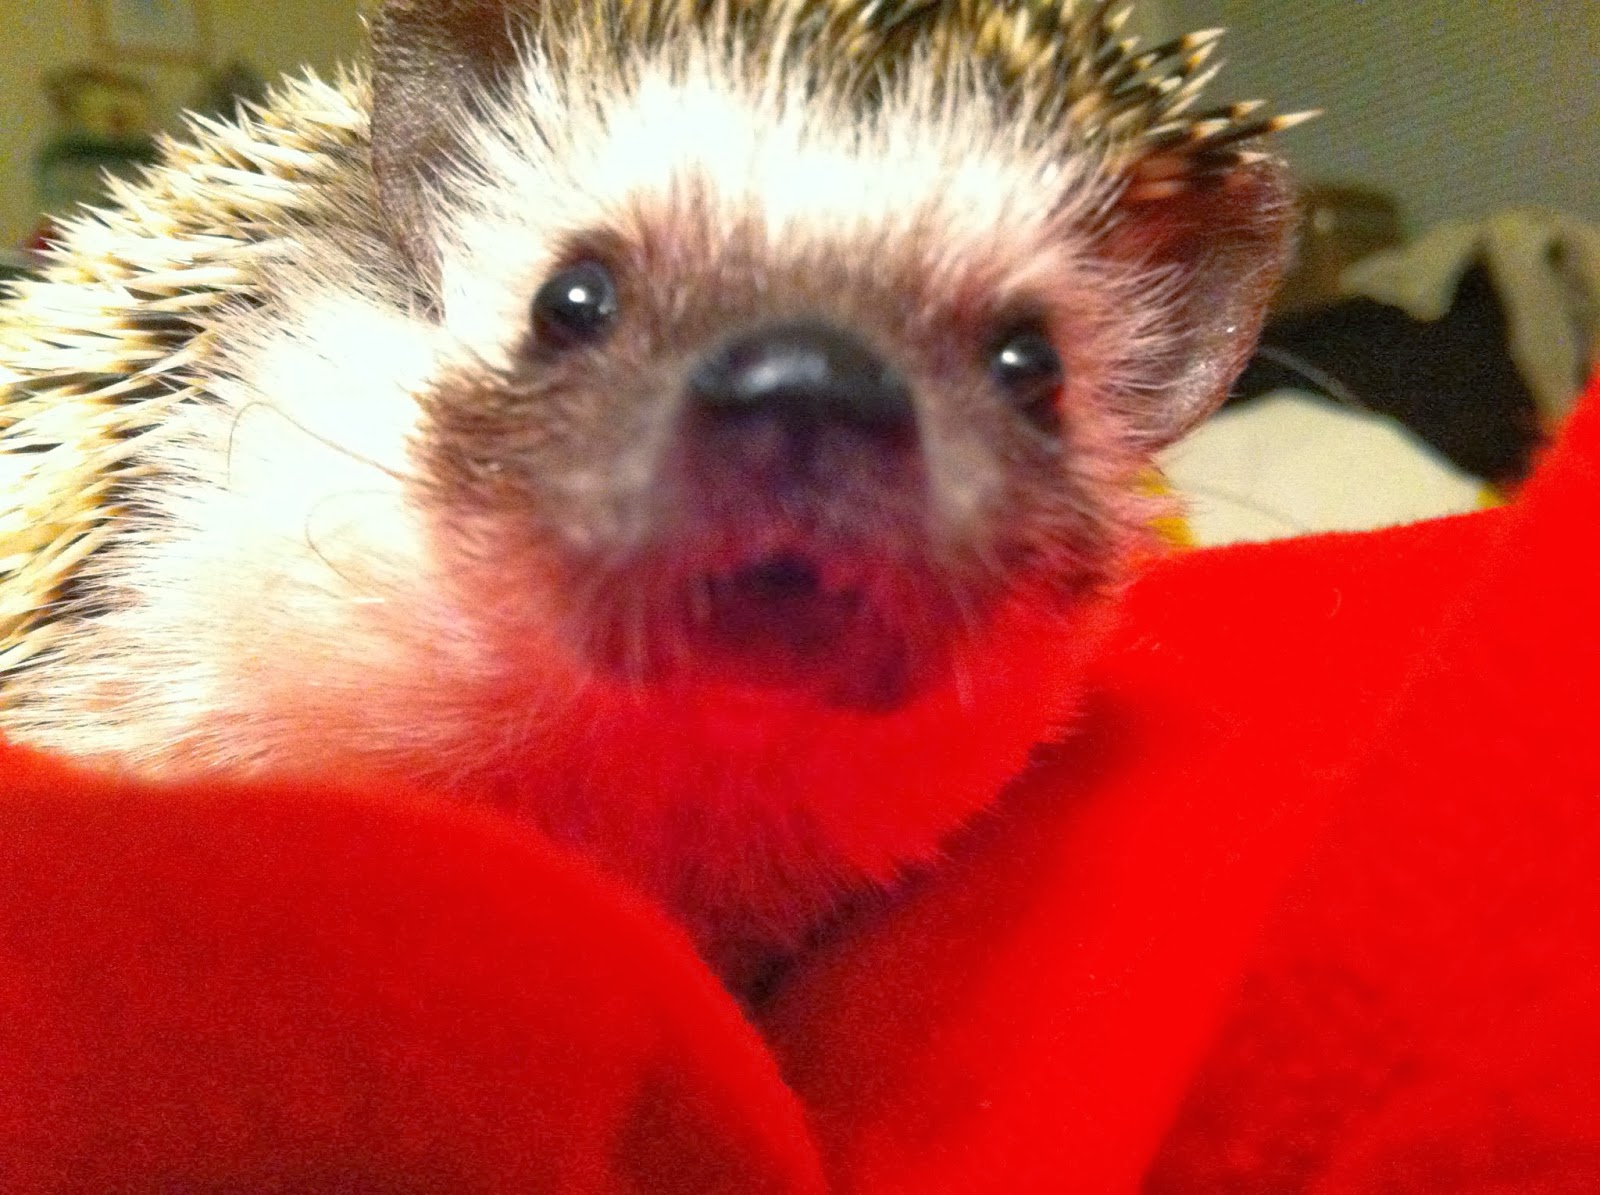 Funny animals of the week - 28 February 2014 (40 pics), close up hedgehog